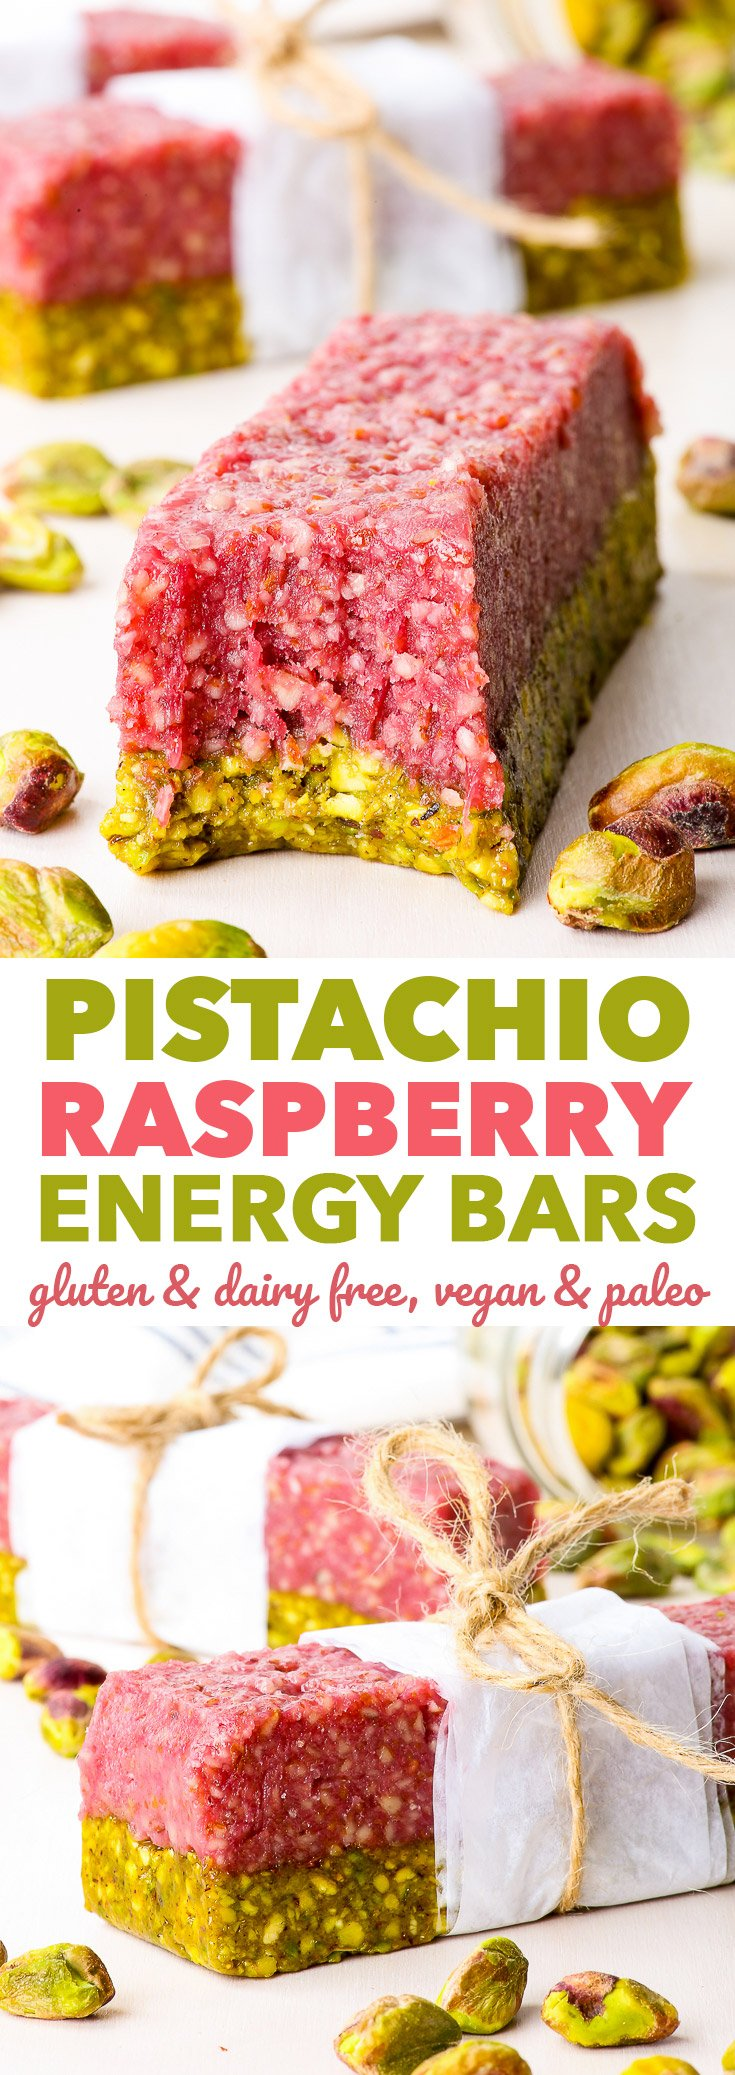 Pistachio Raspberry Energy Bars - The Loopy Whisk